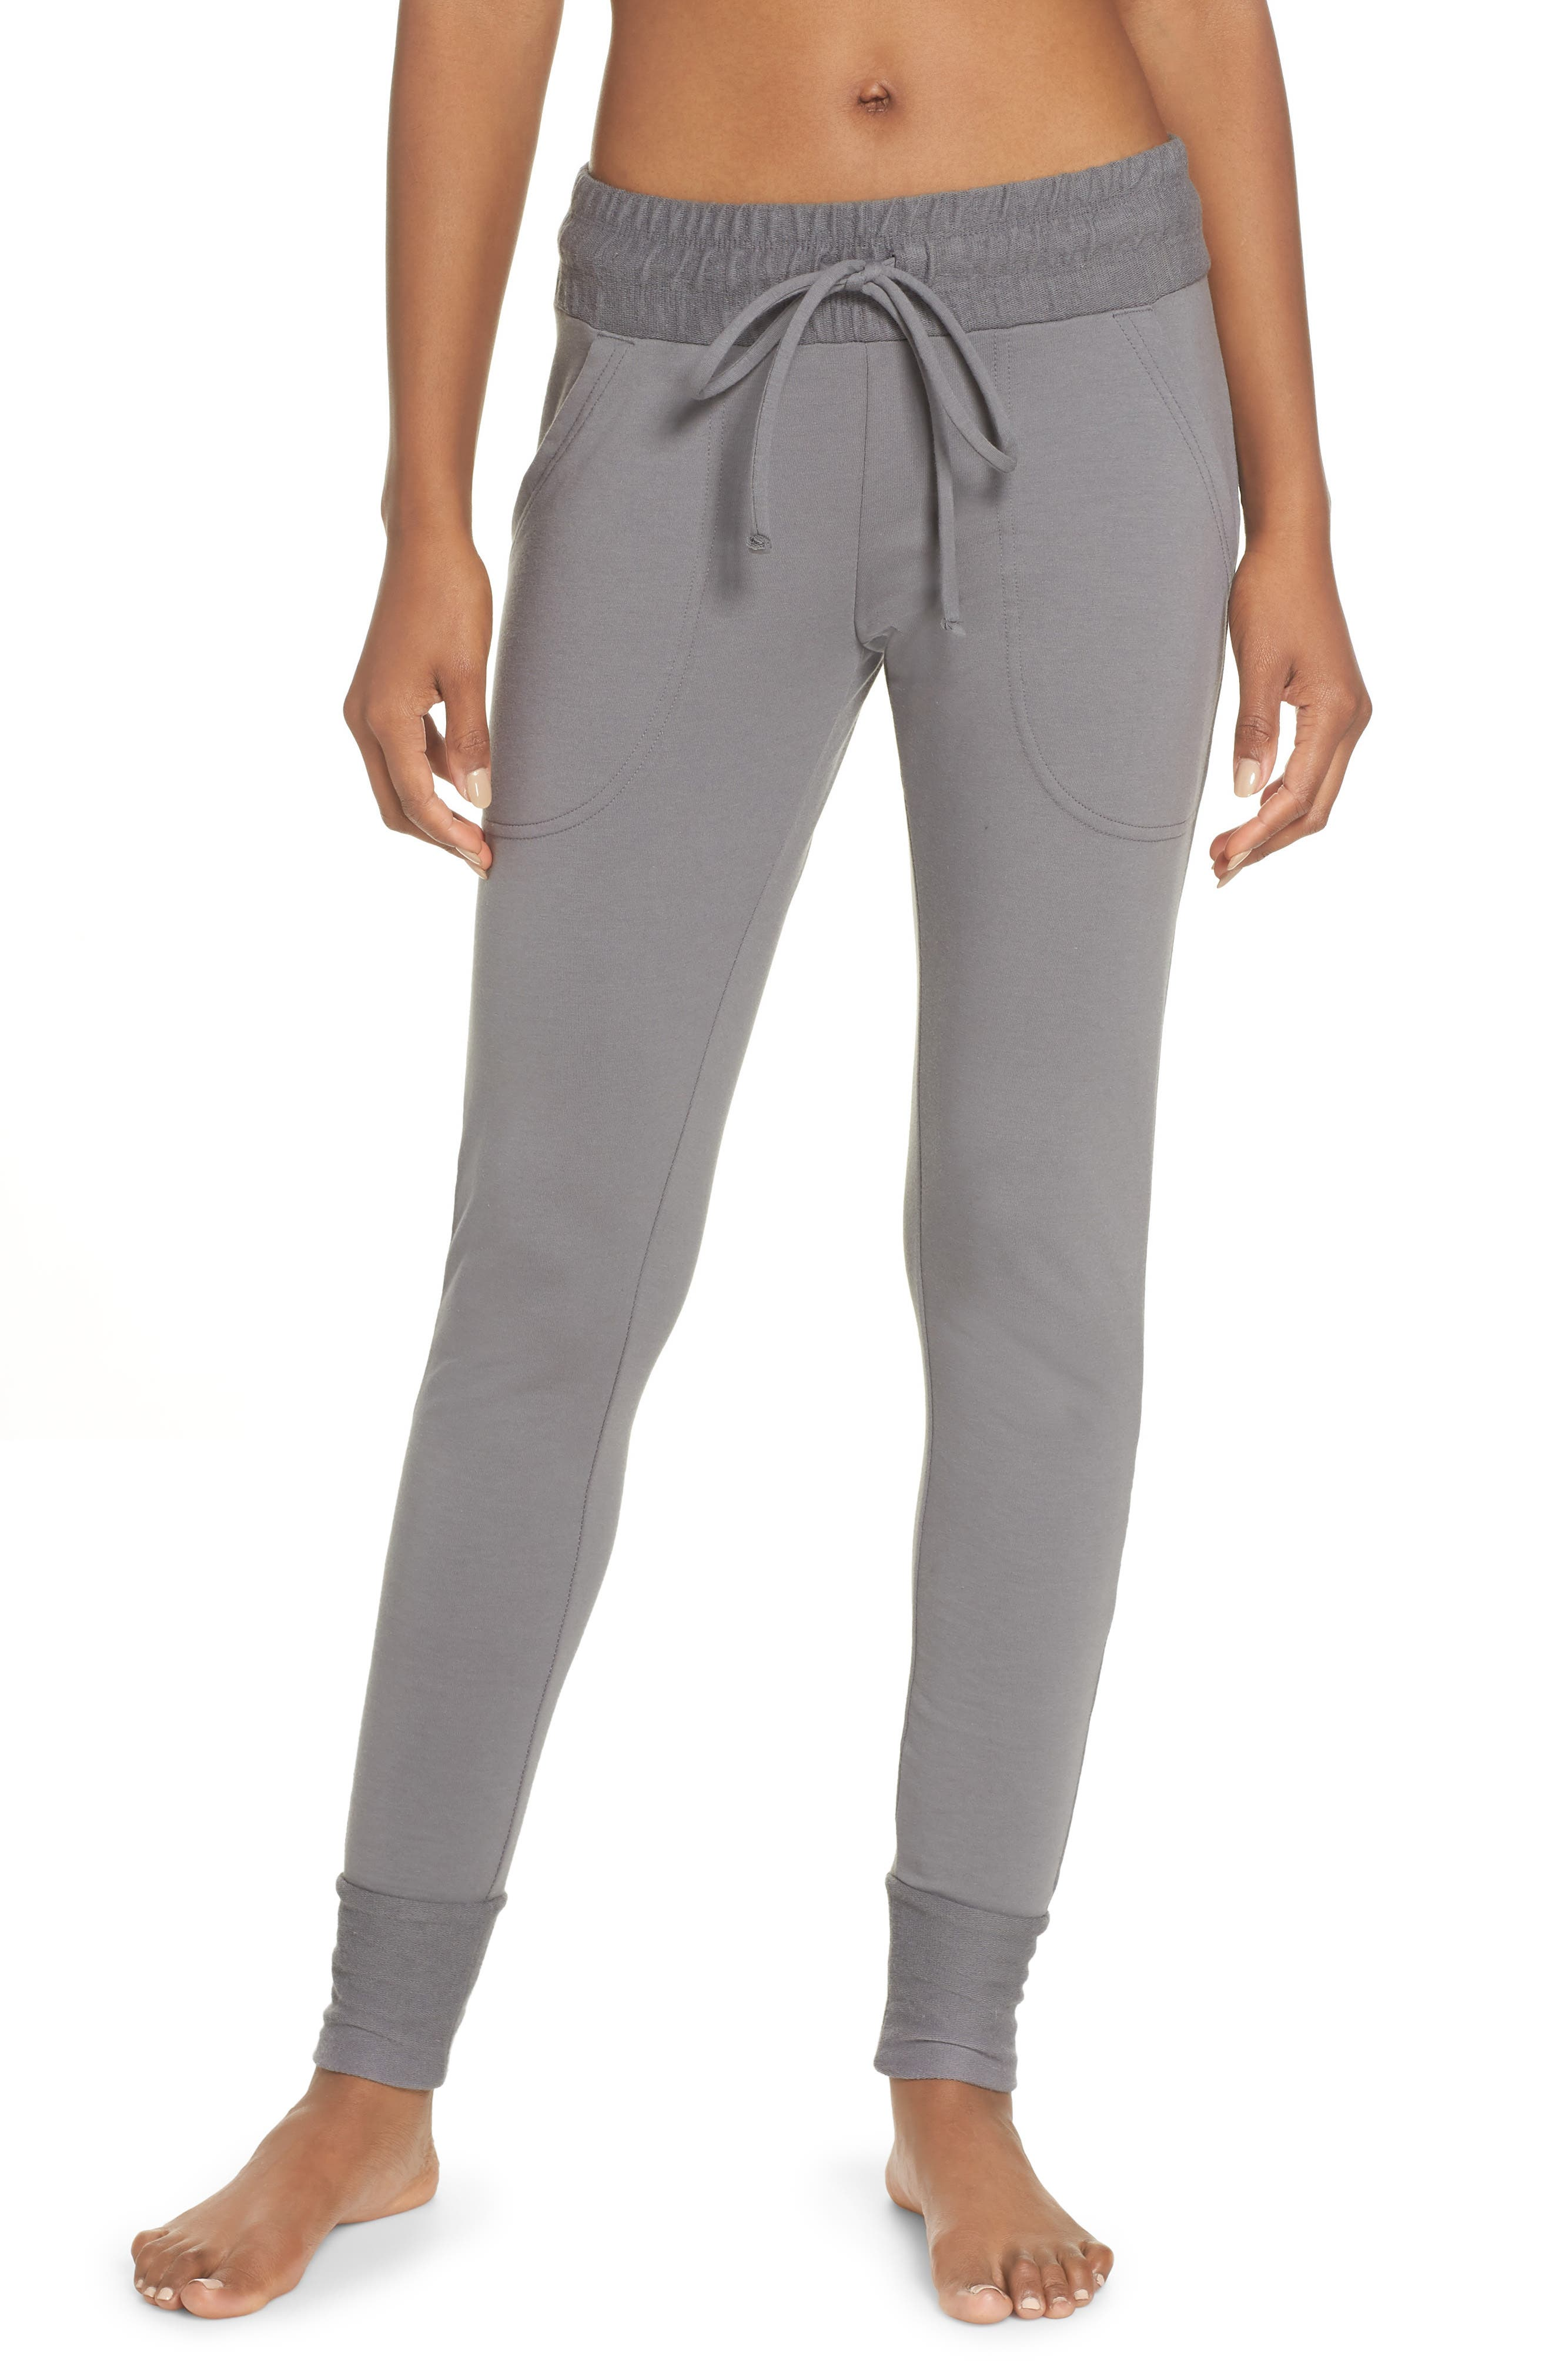 Sunny Skinny Sweatpants,                         Main,                         color, DARK GREY